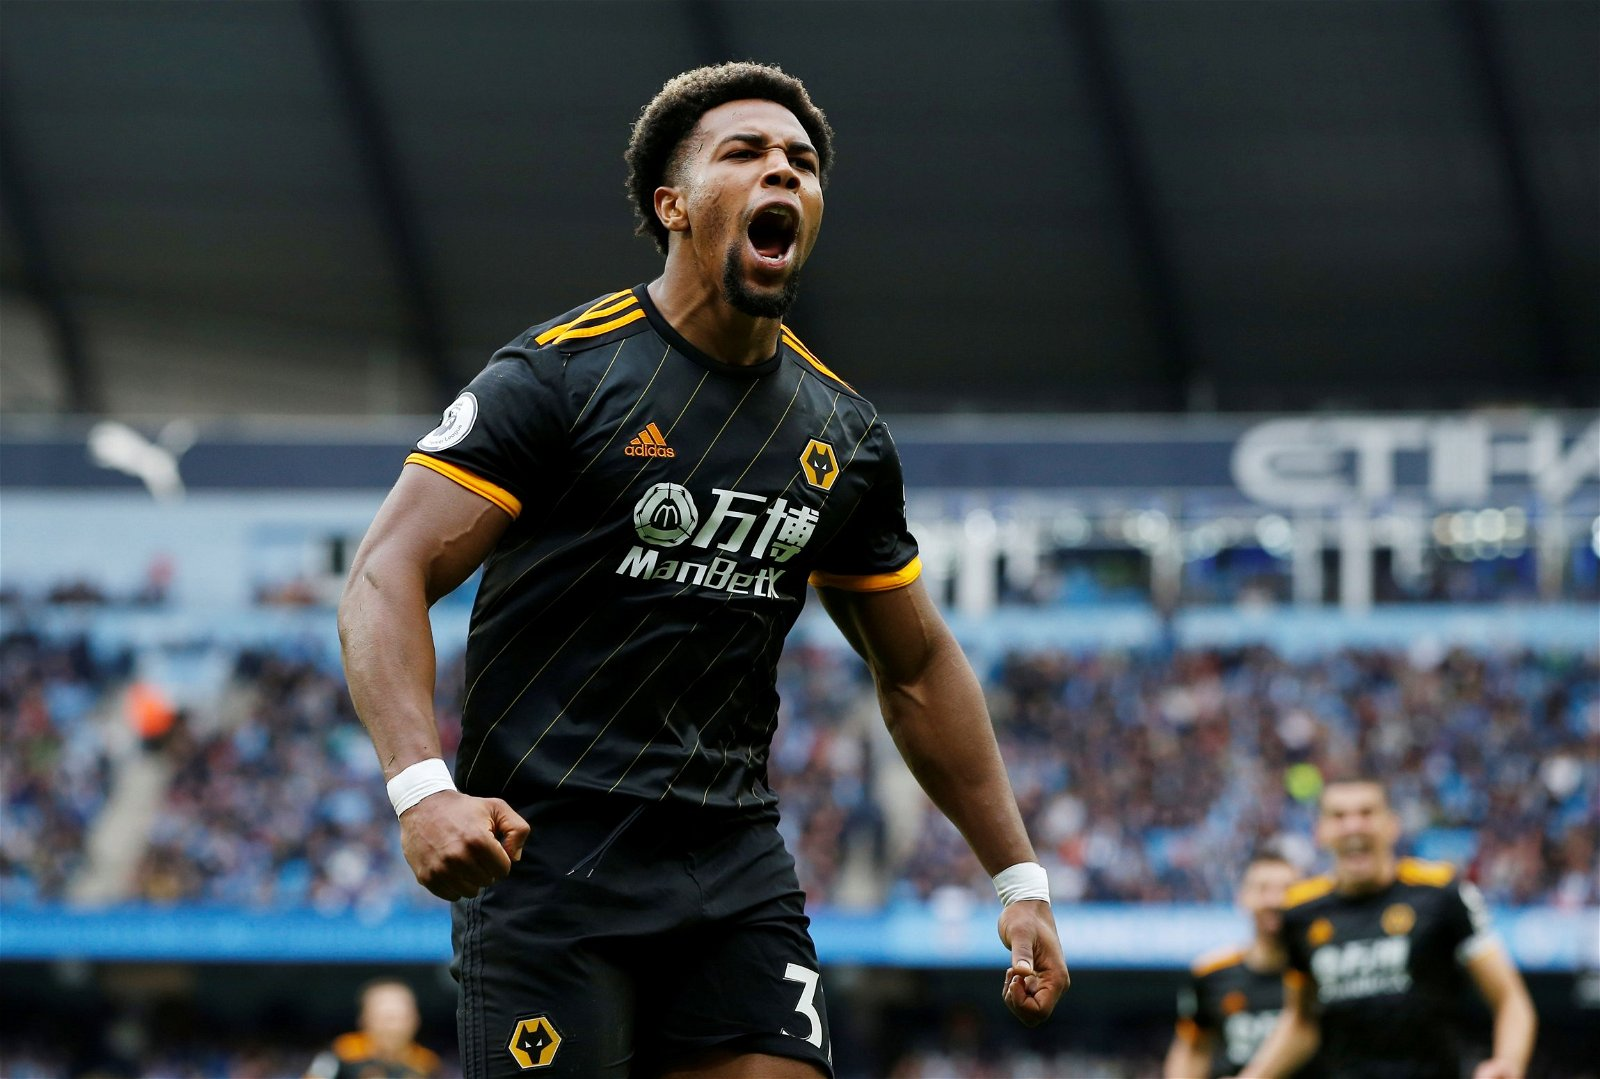 2019 10 06T144510Z 1930599599 RC179F21C4A0 RTRMADP 3 SOCCER ENGLAND MCI WLV REPORT - Smart business: Wolves make huge statement by making £70m-rated star part of future – opinion